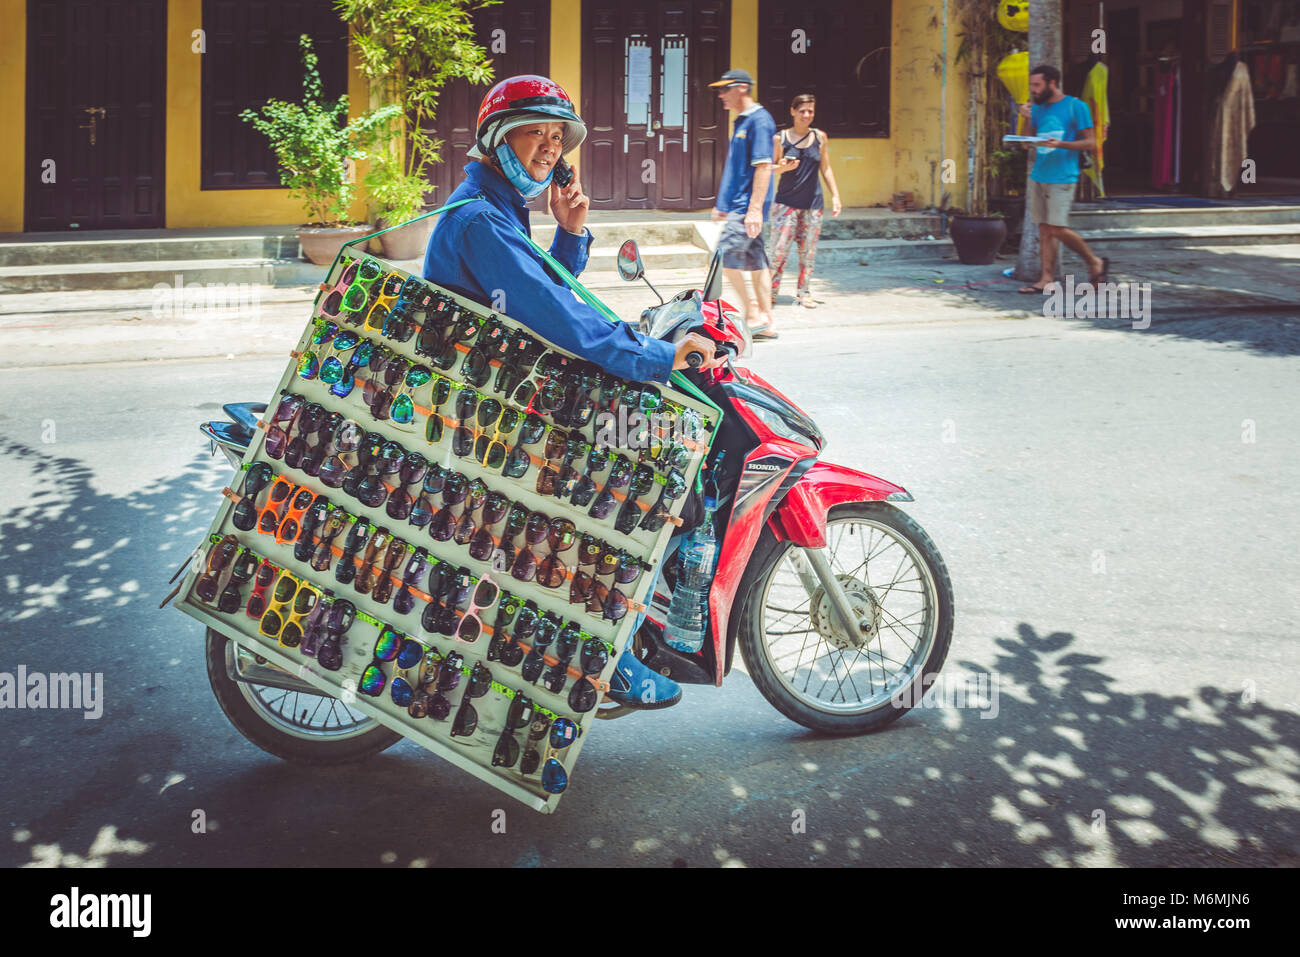 A trader a large board of sunglasses on a moped on the street in Hoi An, Vietnam - Stock Image